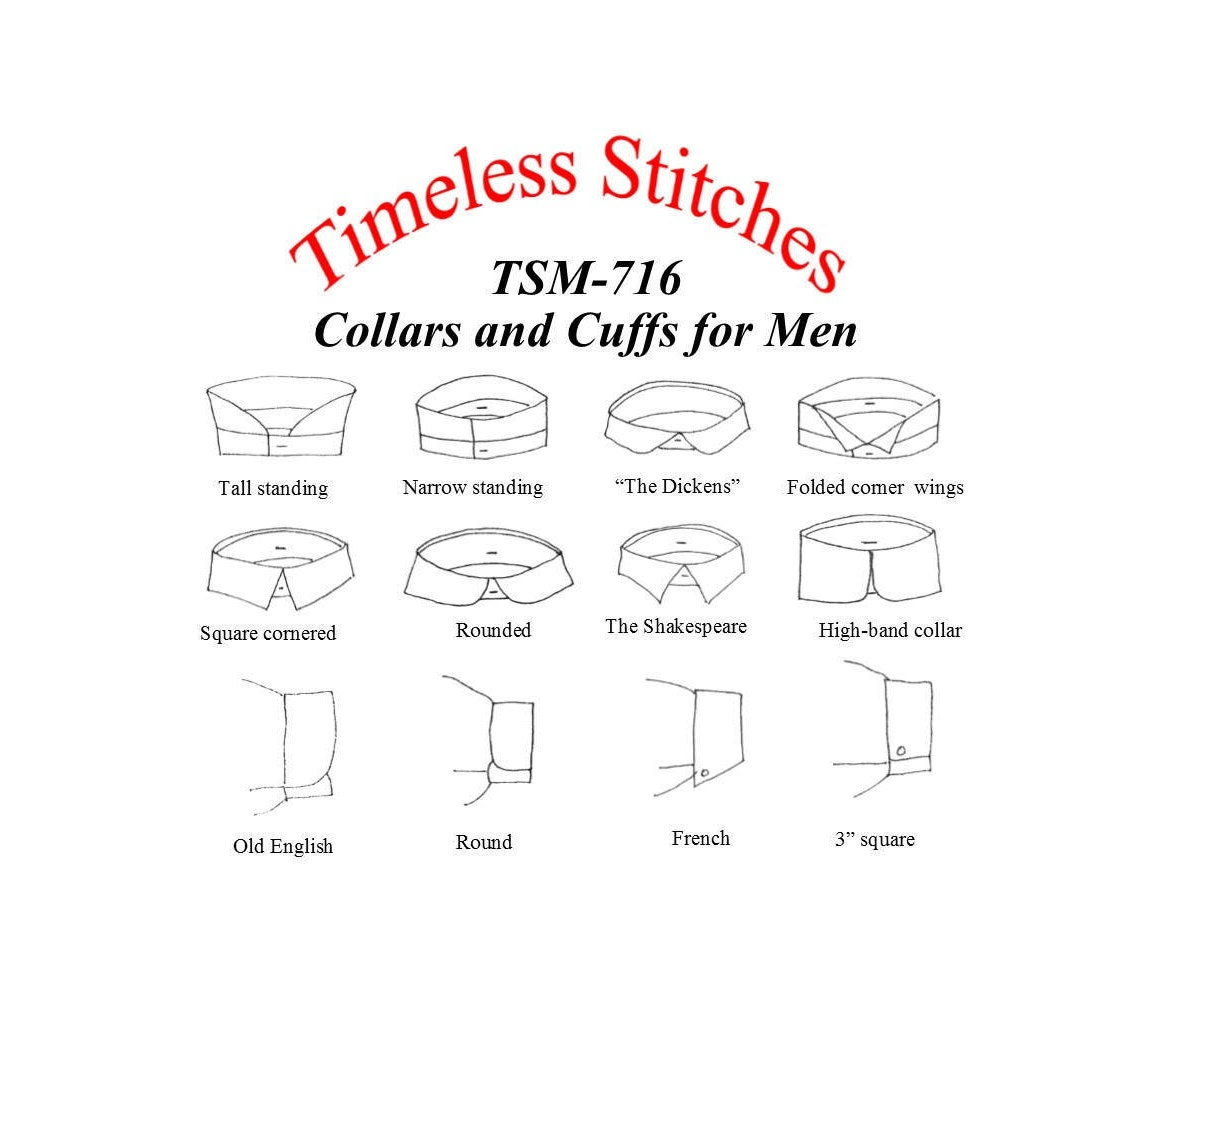 Victorian Men's Clothing, Fashion – 1840 to 1890s Collars  Cuffs For Mens Shirts 19Th Century Civilian Pattern Timeless Stitches Sewing Tsm-716 $10.00 AT vintagedancer.com